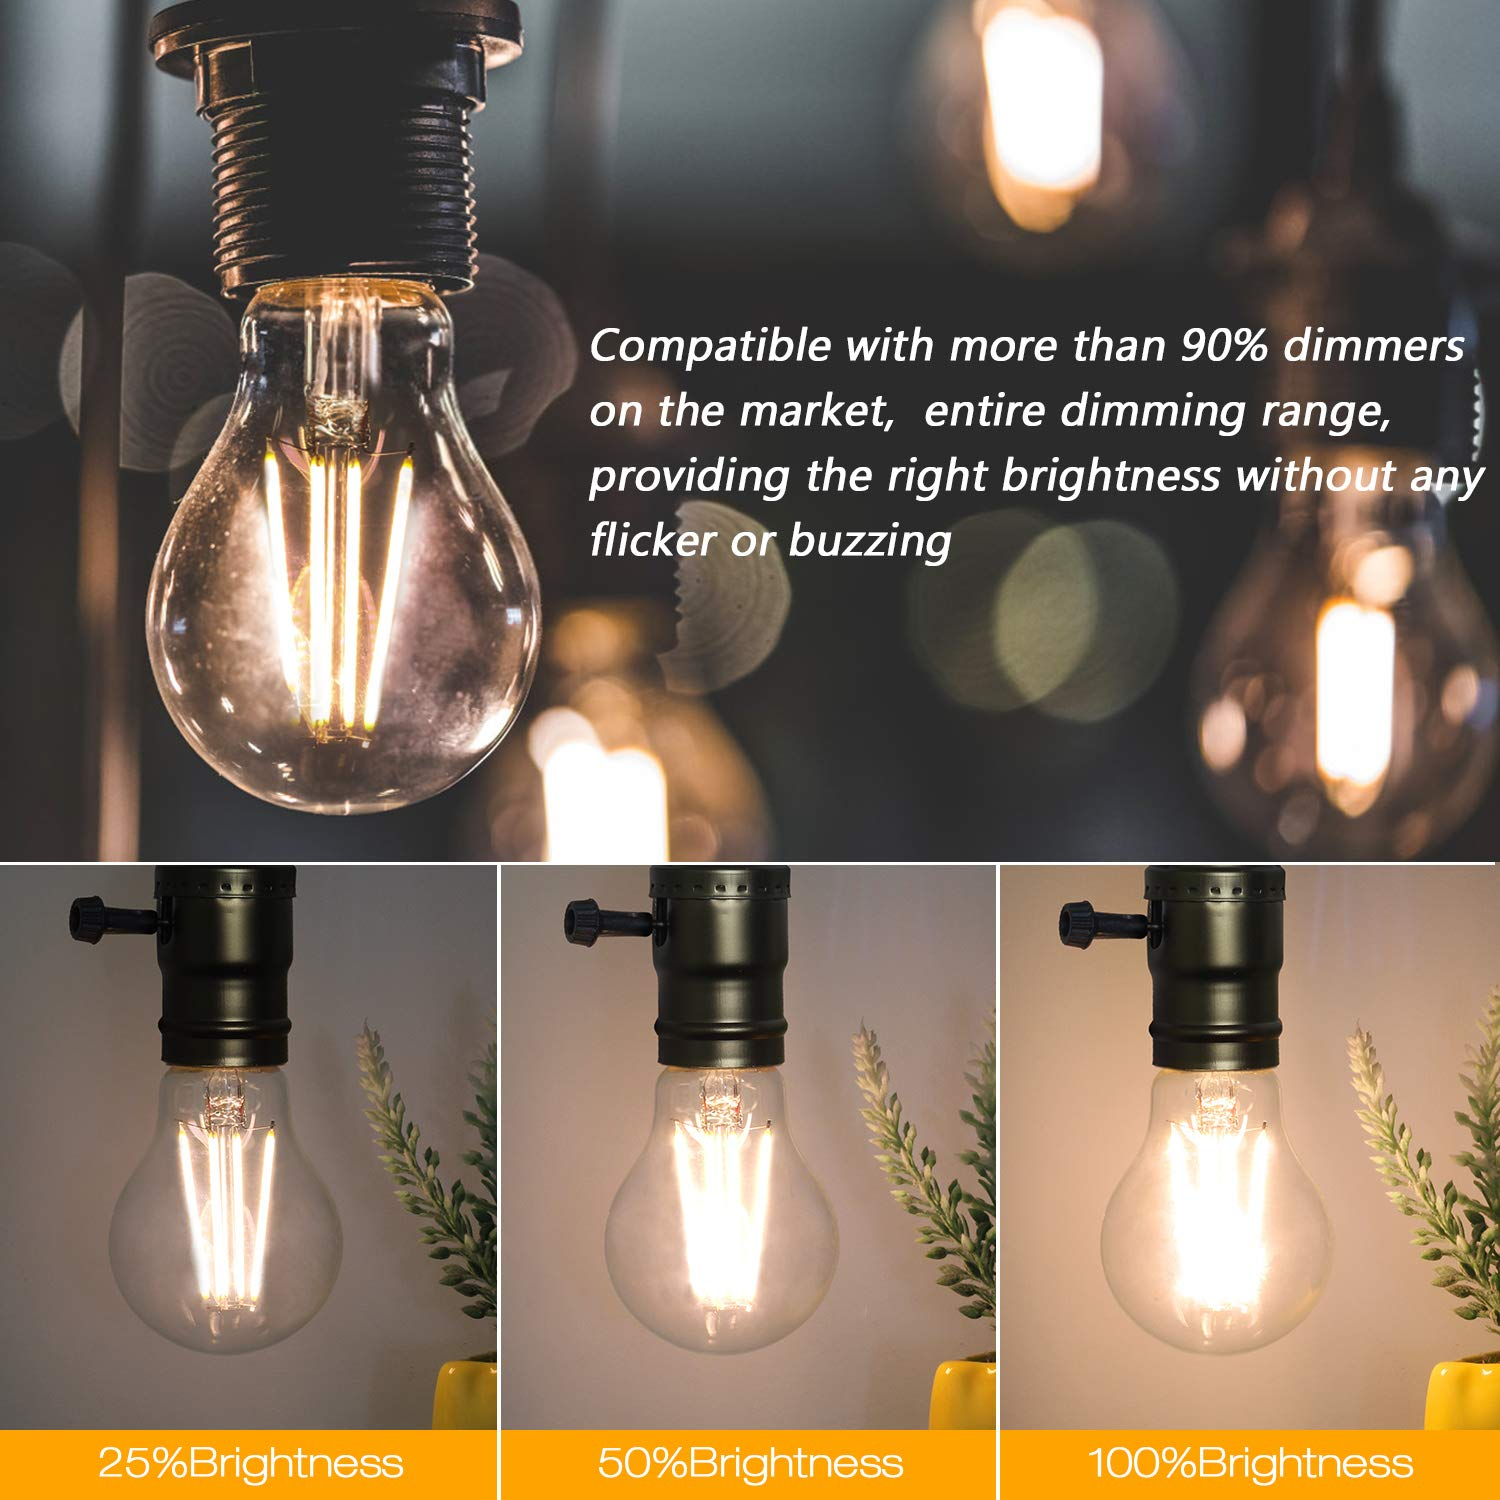 Vintage LED Edison Bulb Dimmable 6W A19 LED Light Bulbs 2700K Soft White 600LM Led Filament Bulb 60W Incandescent Equivalent E26 Medium Base Decorative Clear Glass for Home, Restaurant, Cafe, 6 Pack by Boncoo (Image #4)